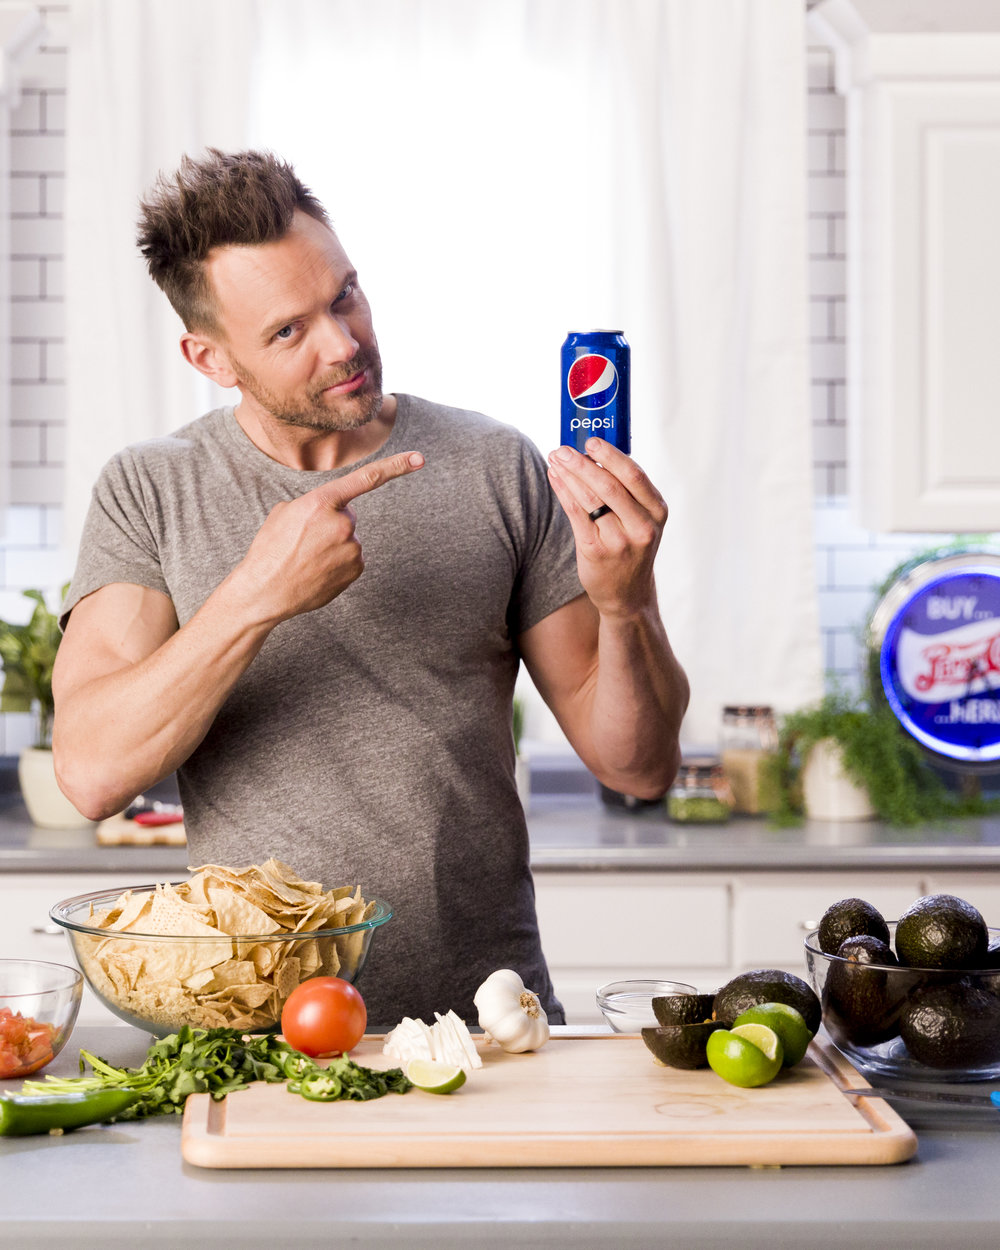 BVH_Pepsi_Version2--2.jpg